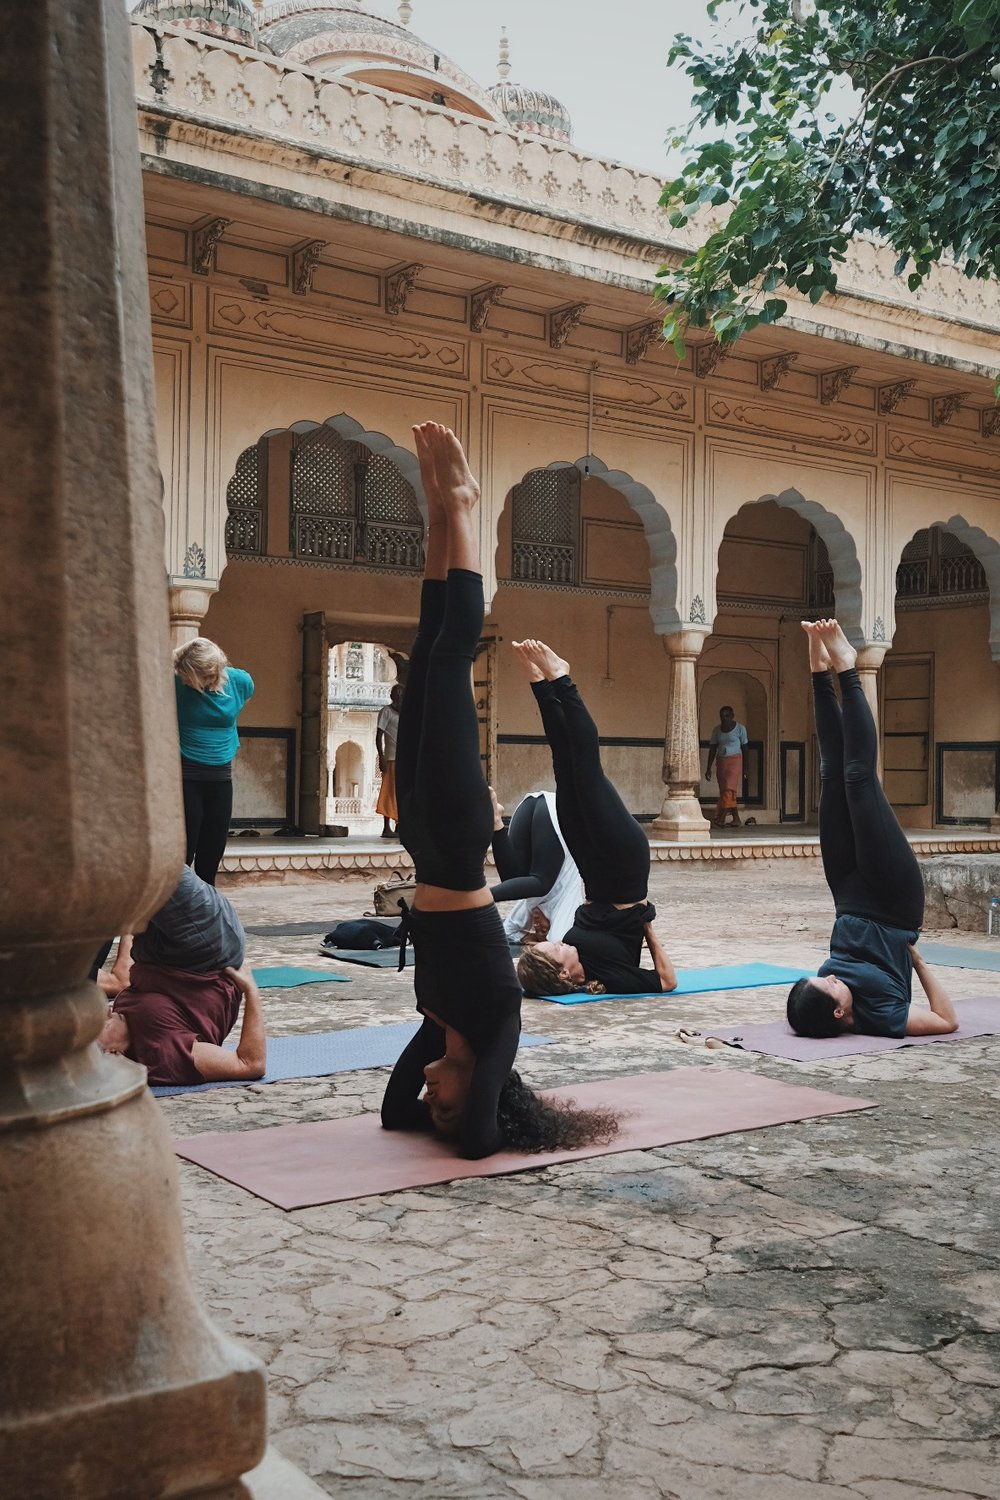 Students practicing yoga inversions at Shri Galtaji, Inspired India 2018. Photography by Precious LaPlante.